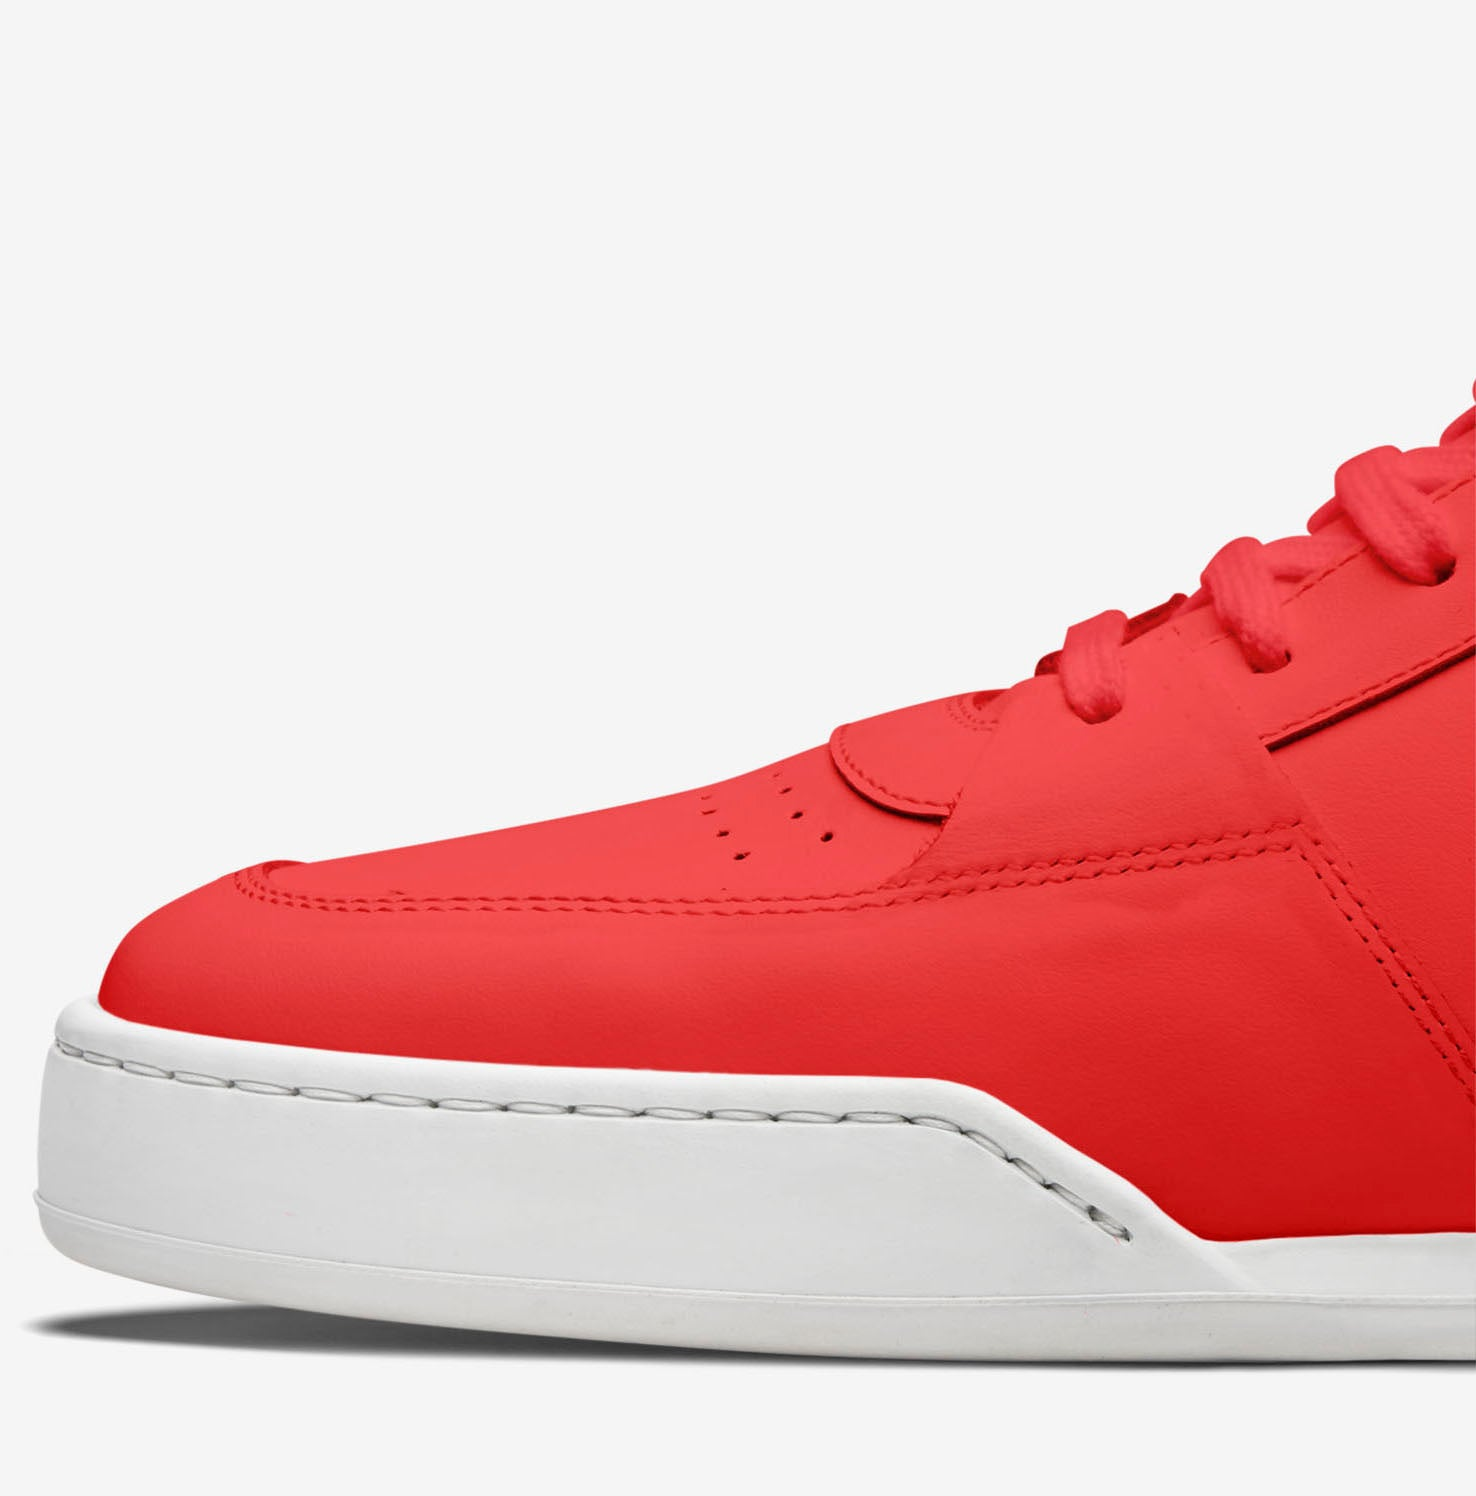 Court | Red 3